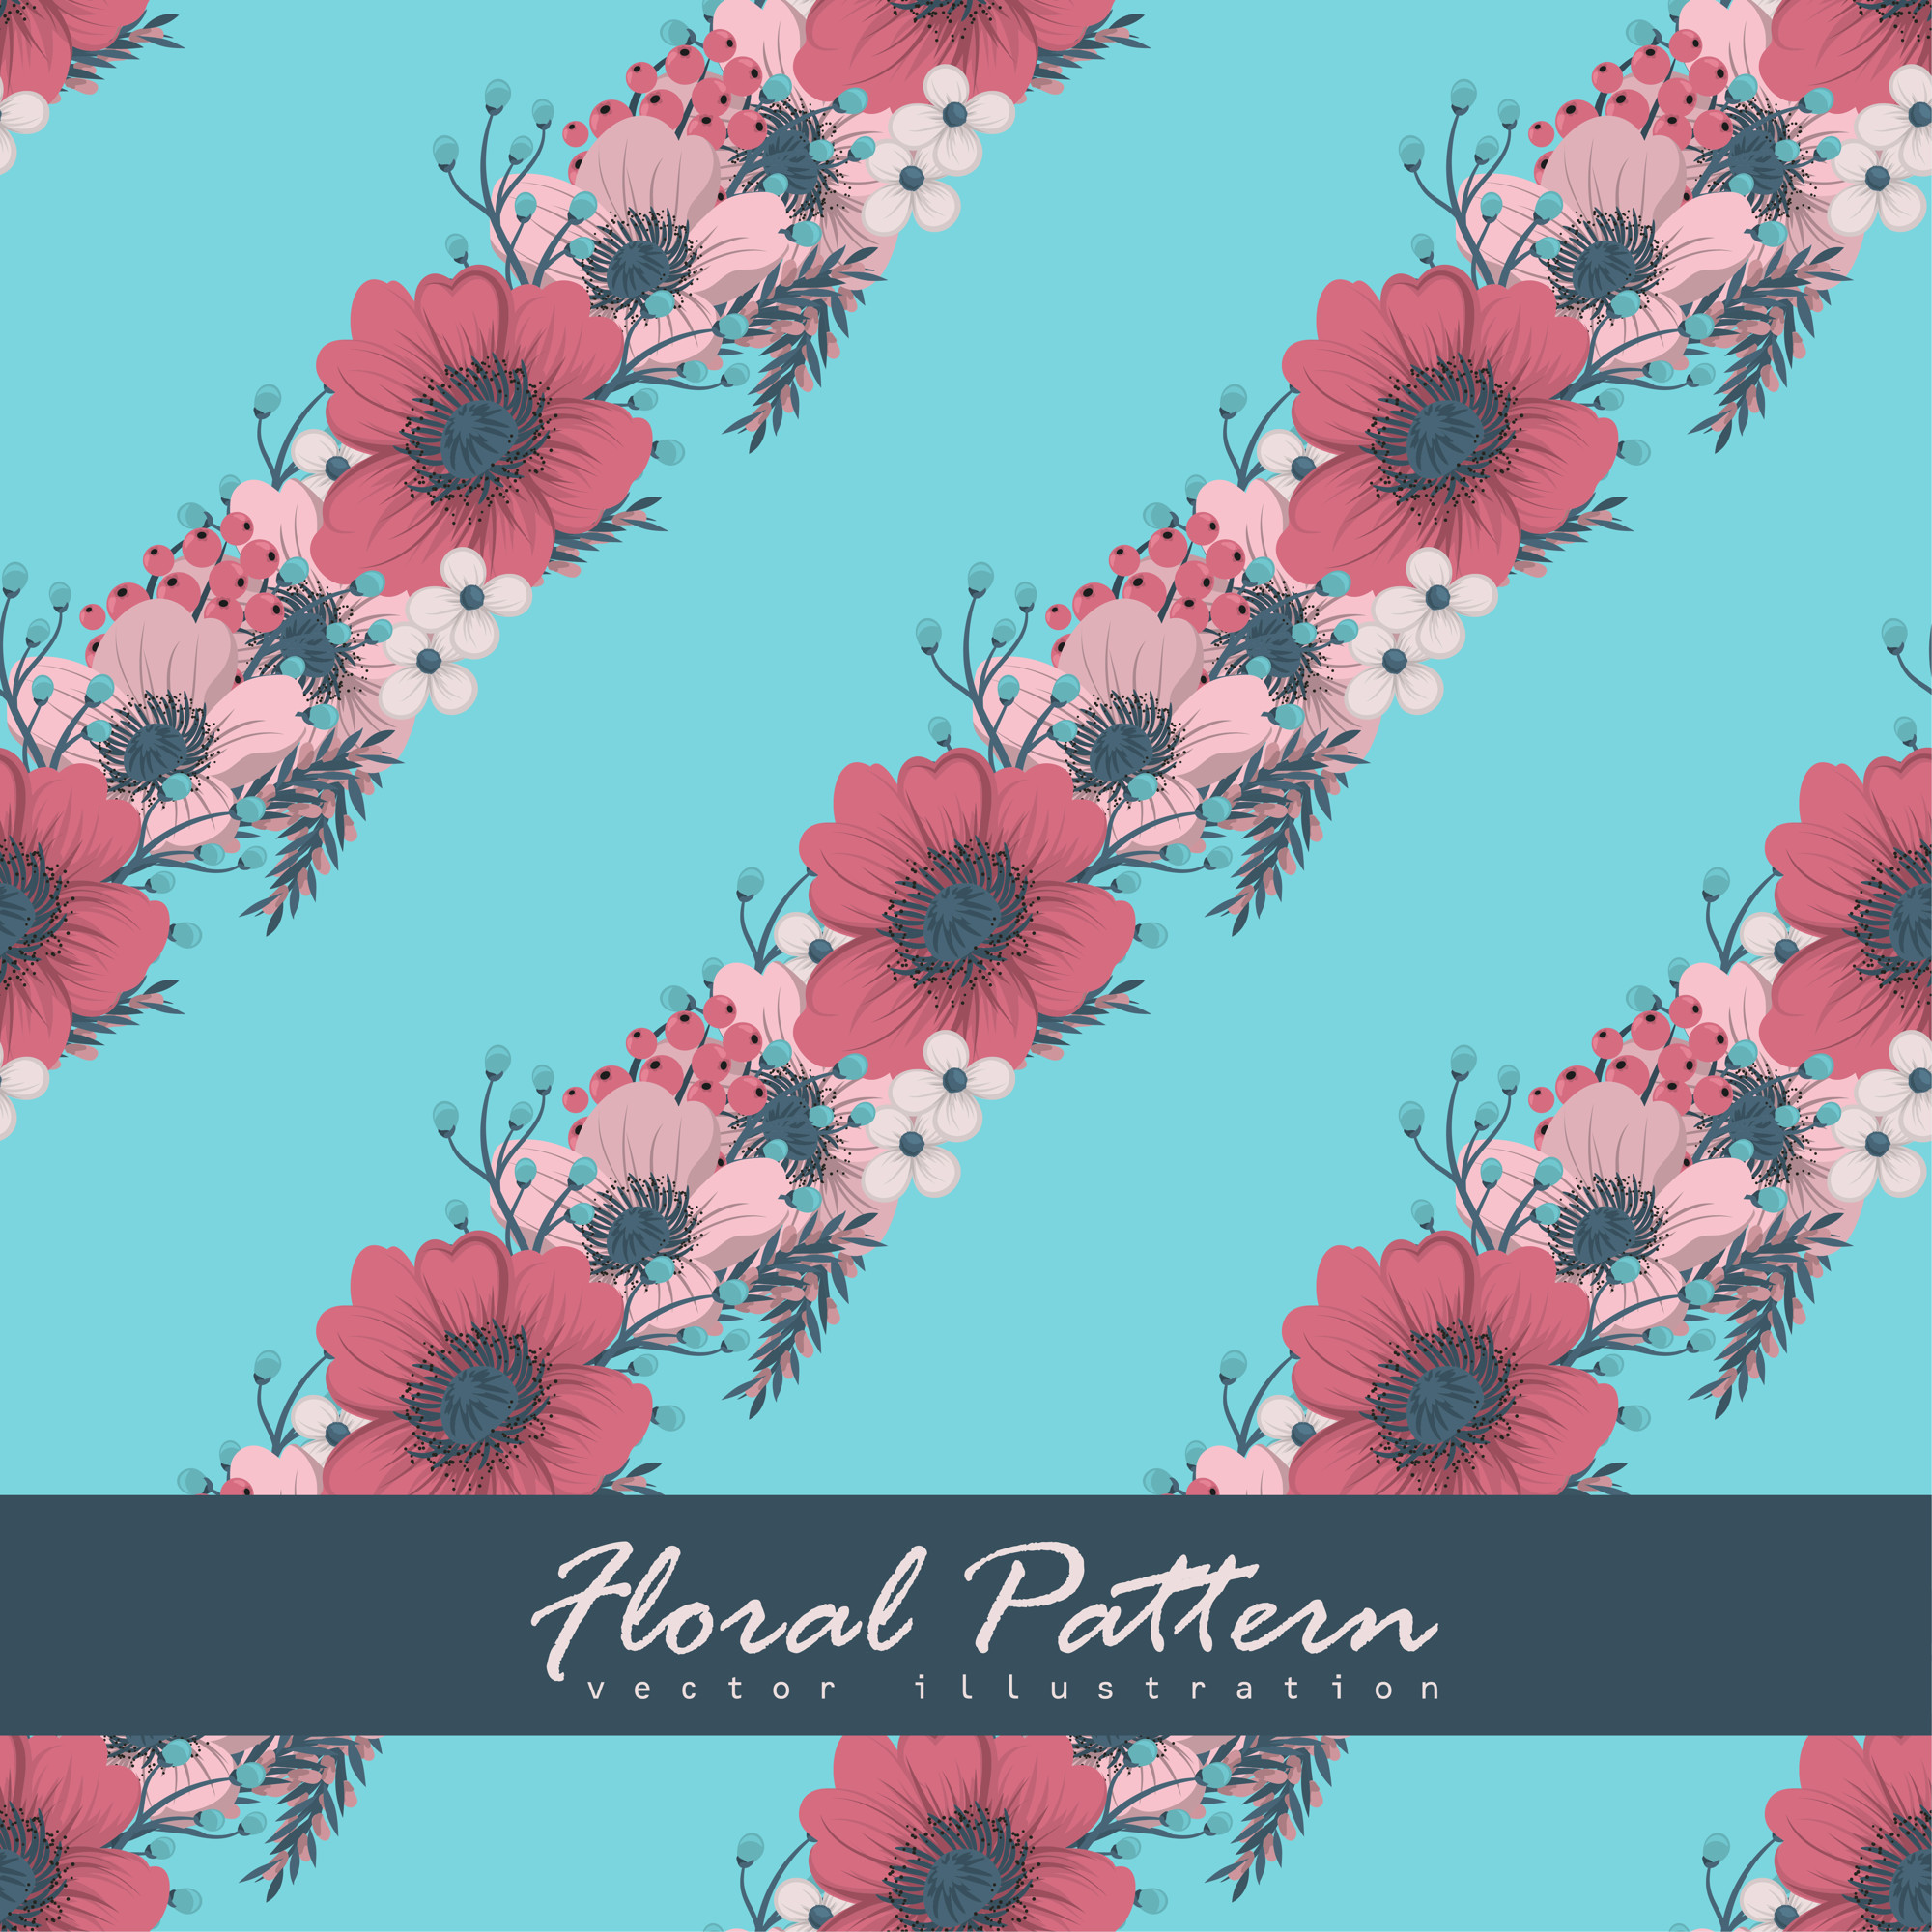 Floral bouquet pattern with flowers and leaves